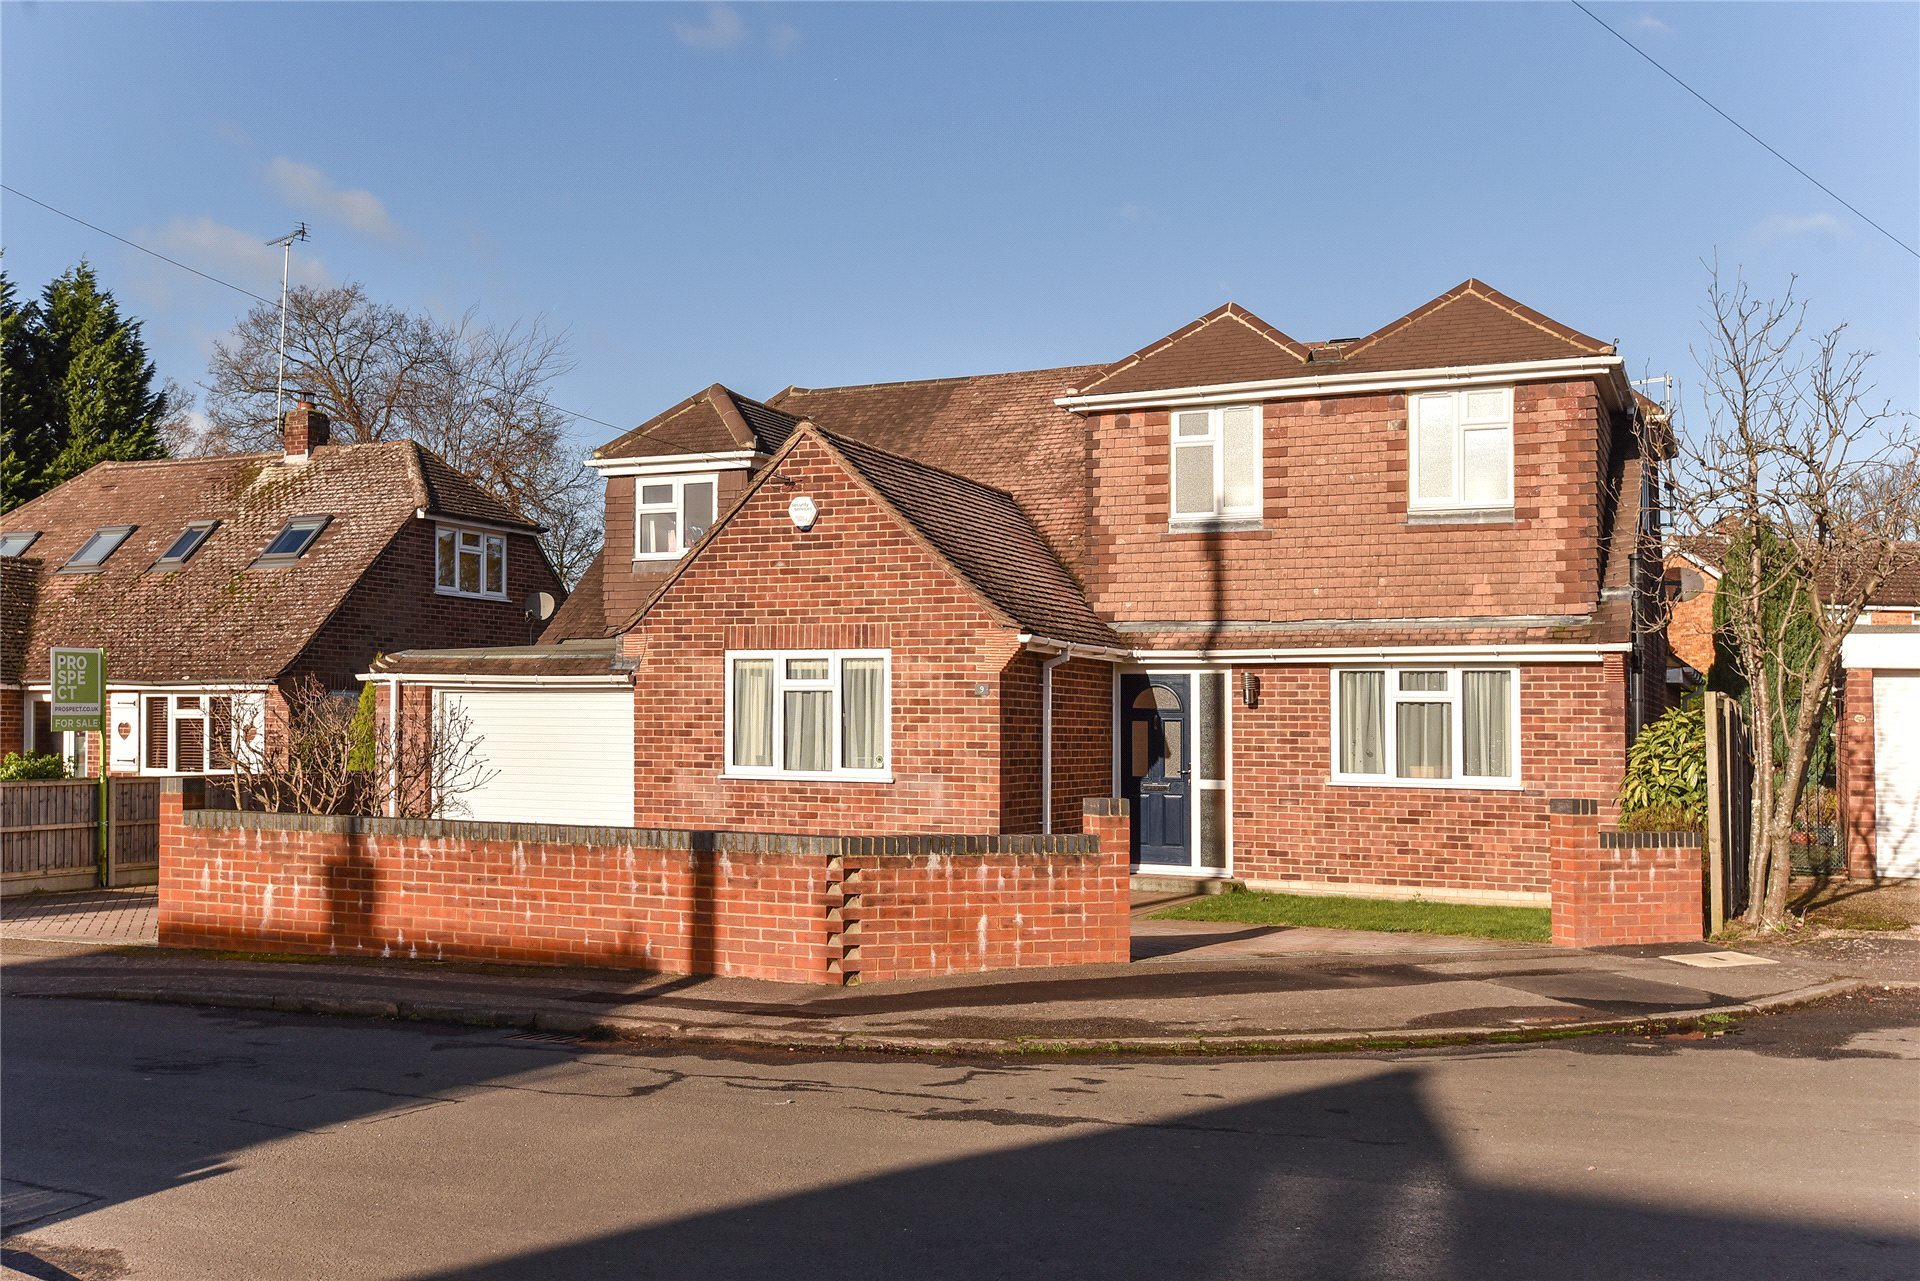 4 Bedrooms Detached House for sale in Farm Close, Crowthorne, Berkshire, RG45